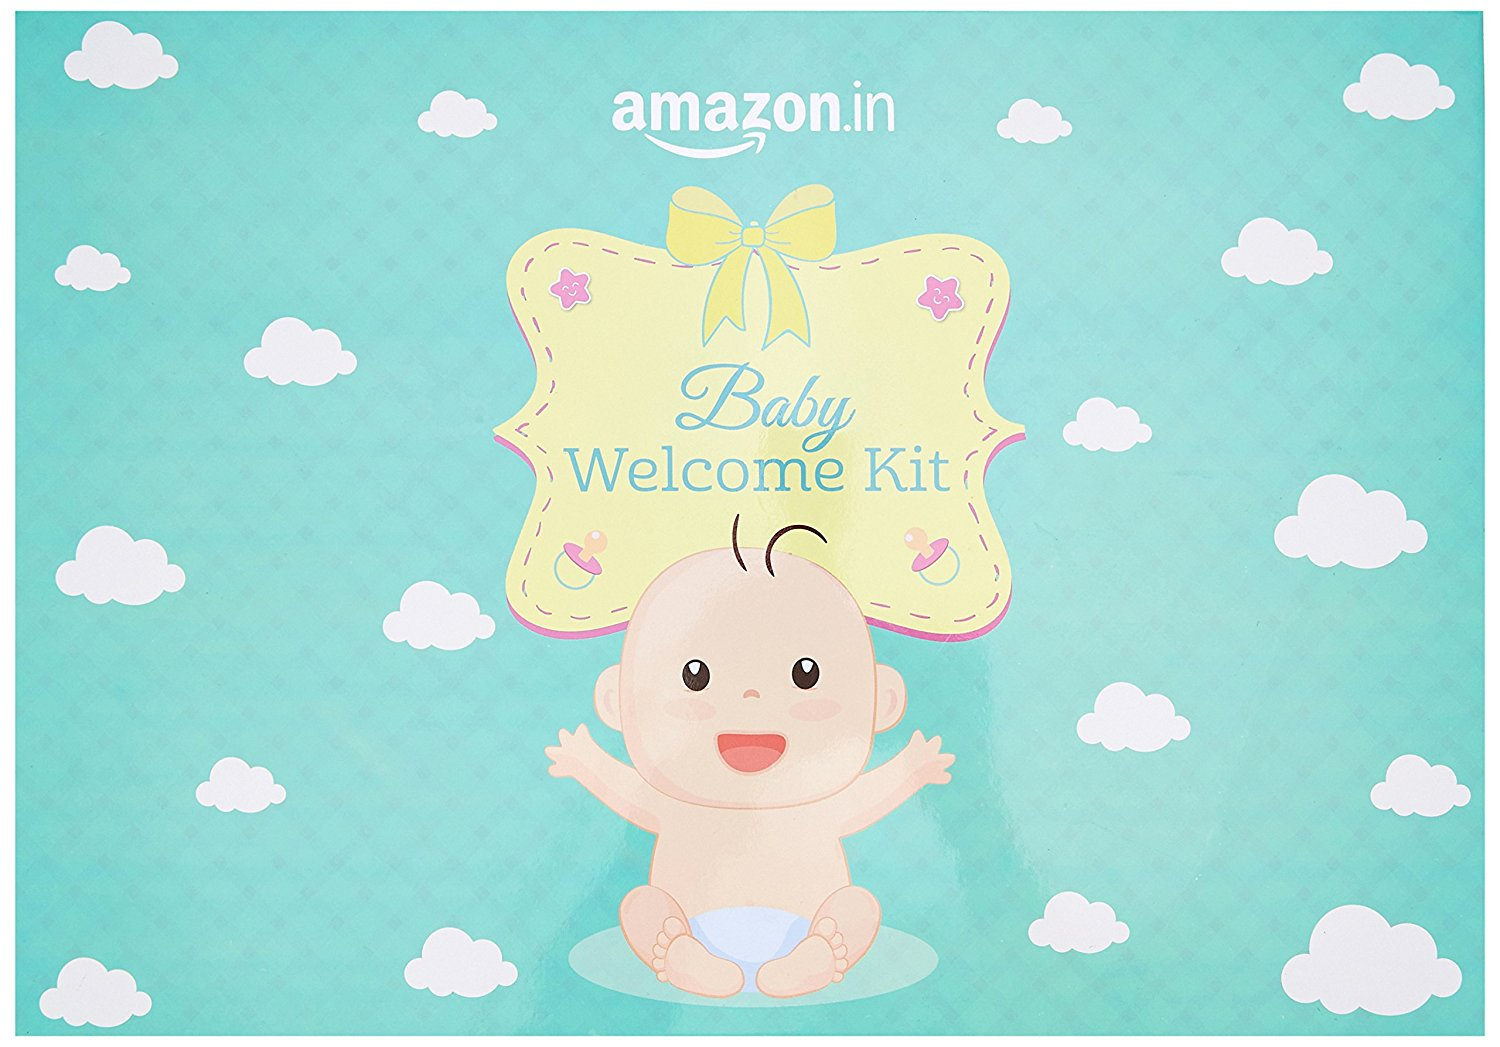 (Loot) Get Amazon Baby Welcome Kit For Free 1